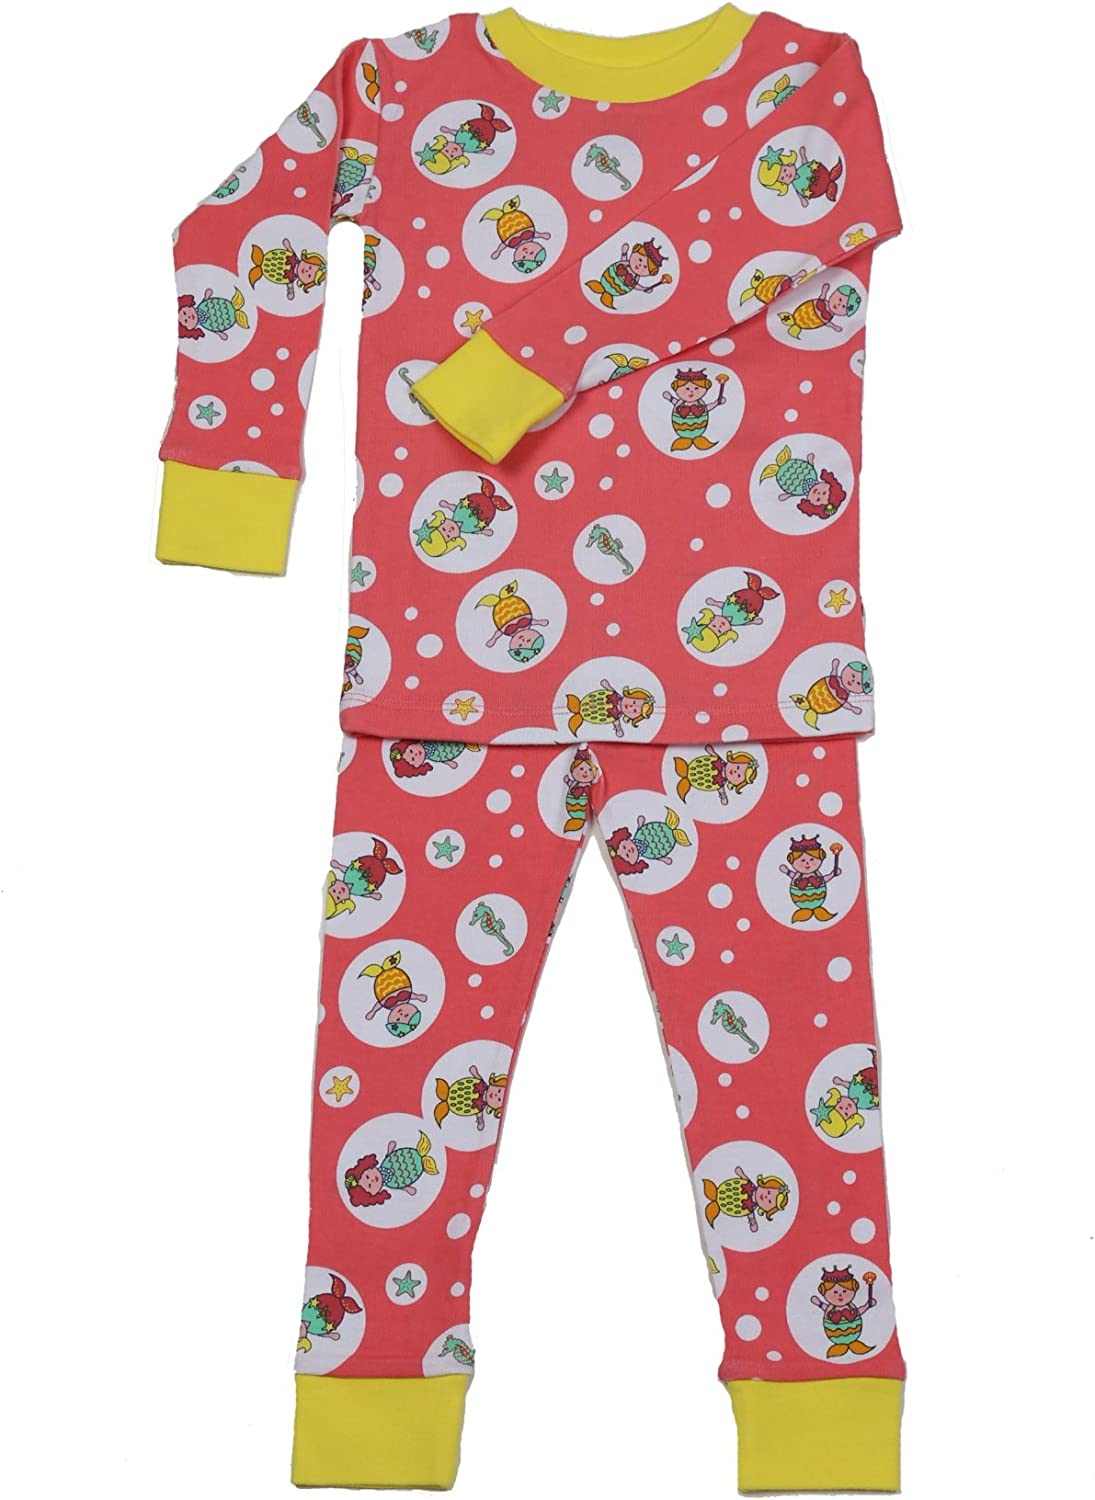 New Jammies Organic Cotton Snuggly Pajamas